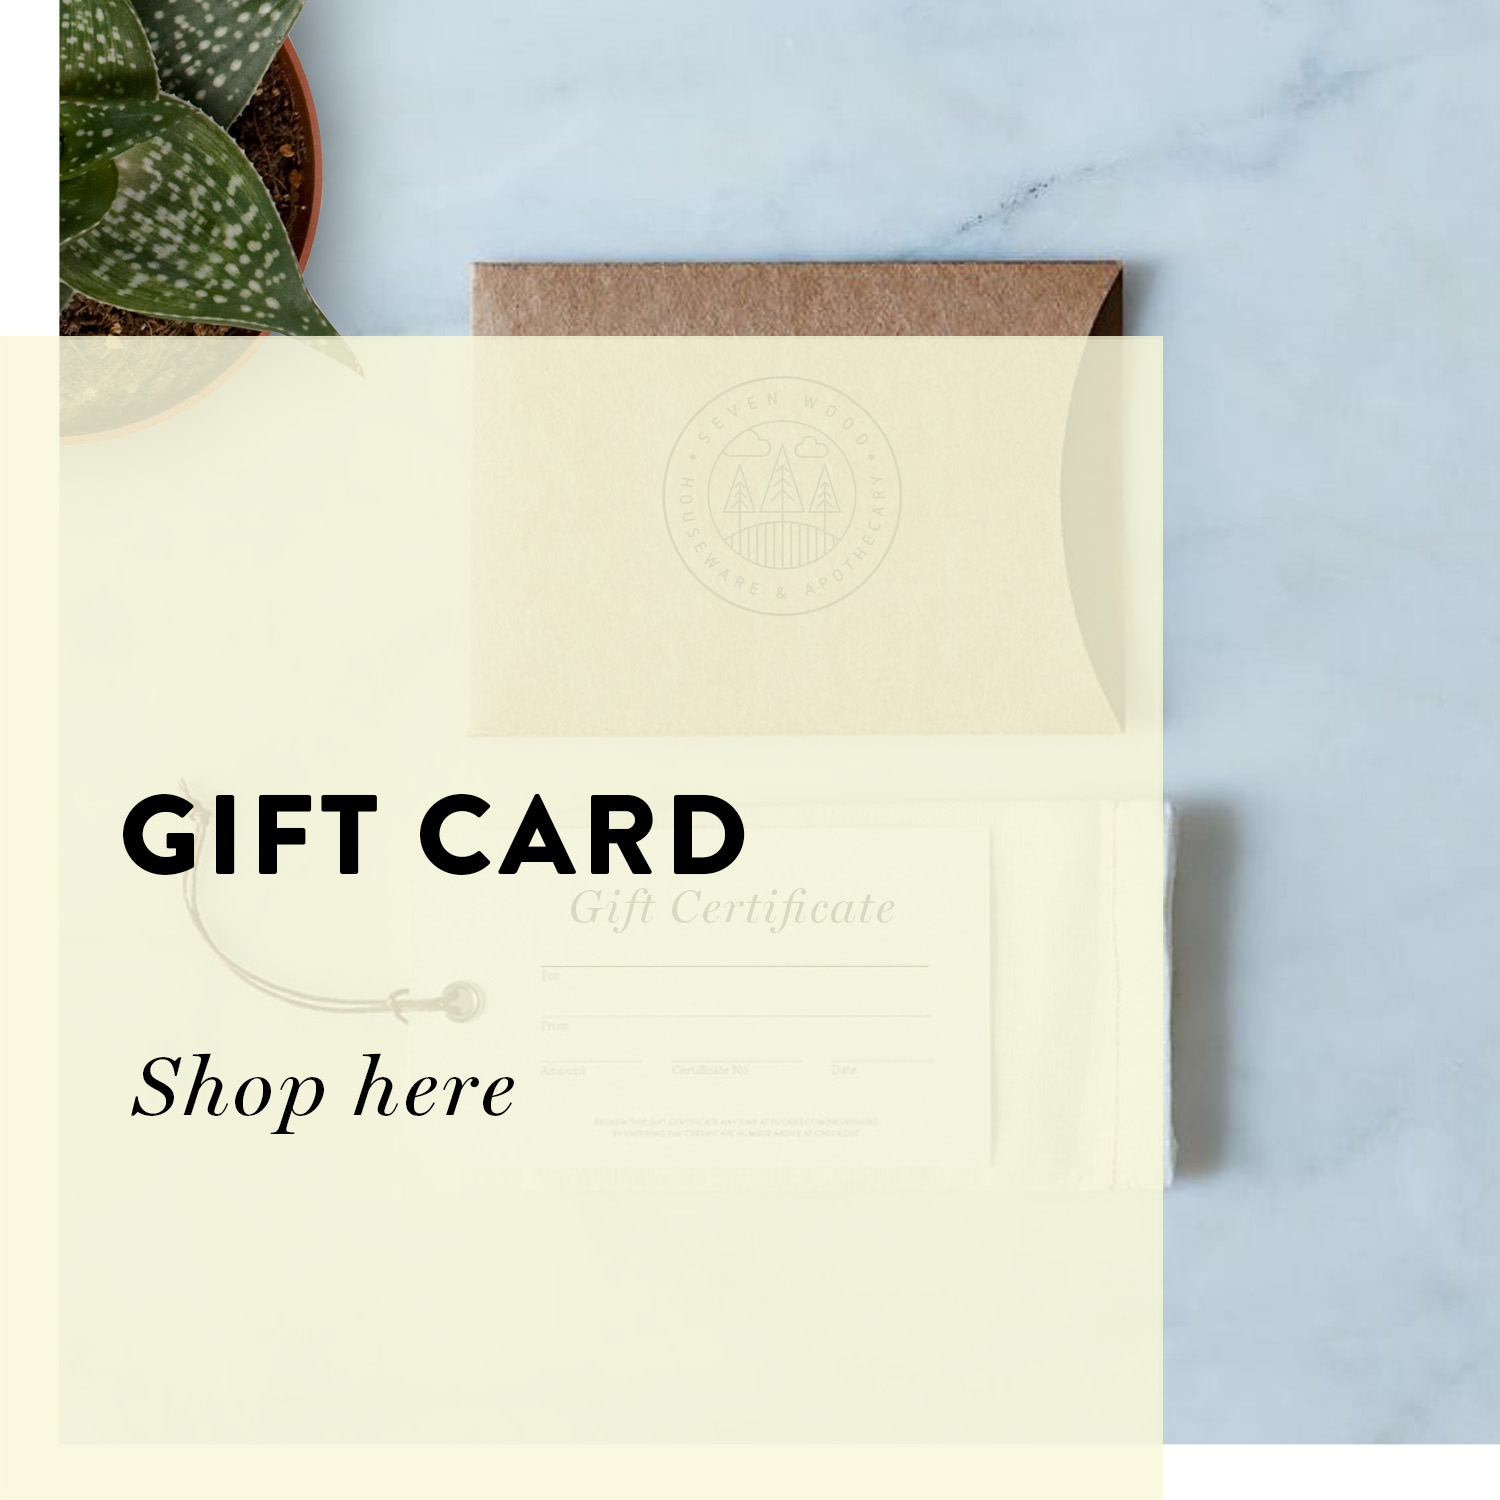 giftcard_graphic.jpg